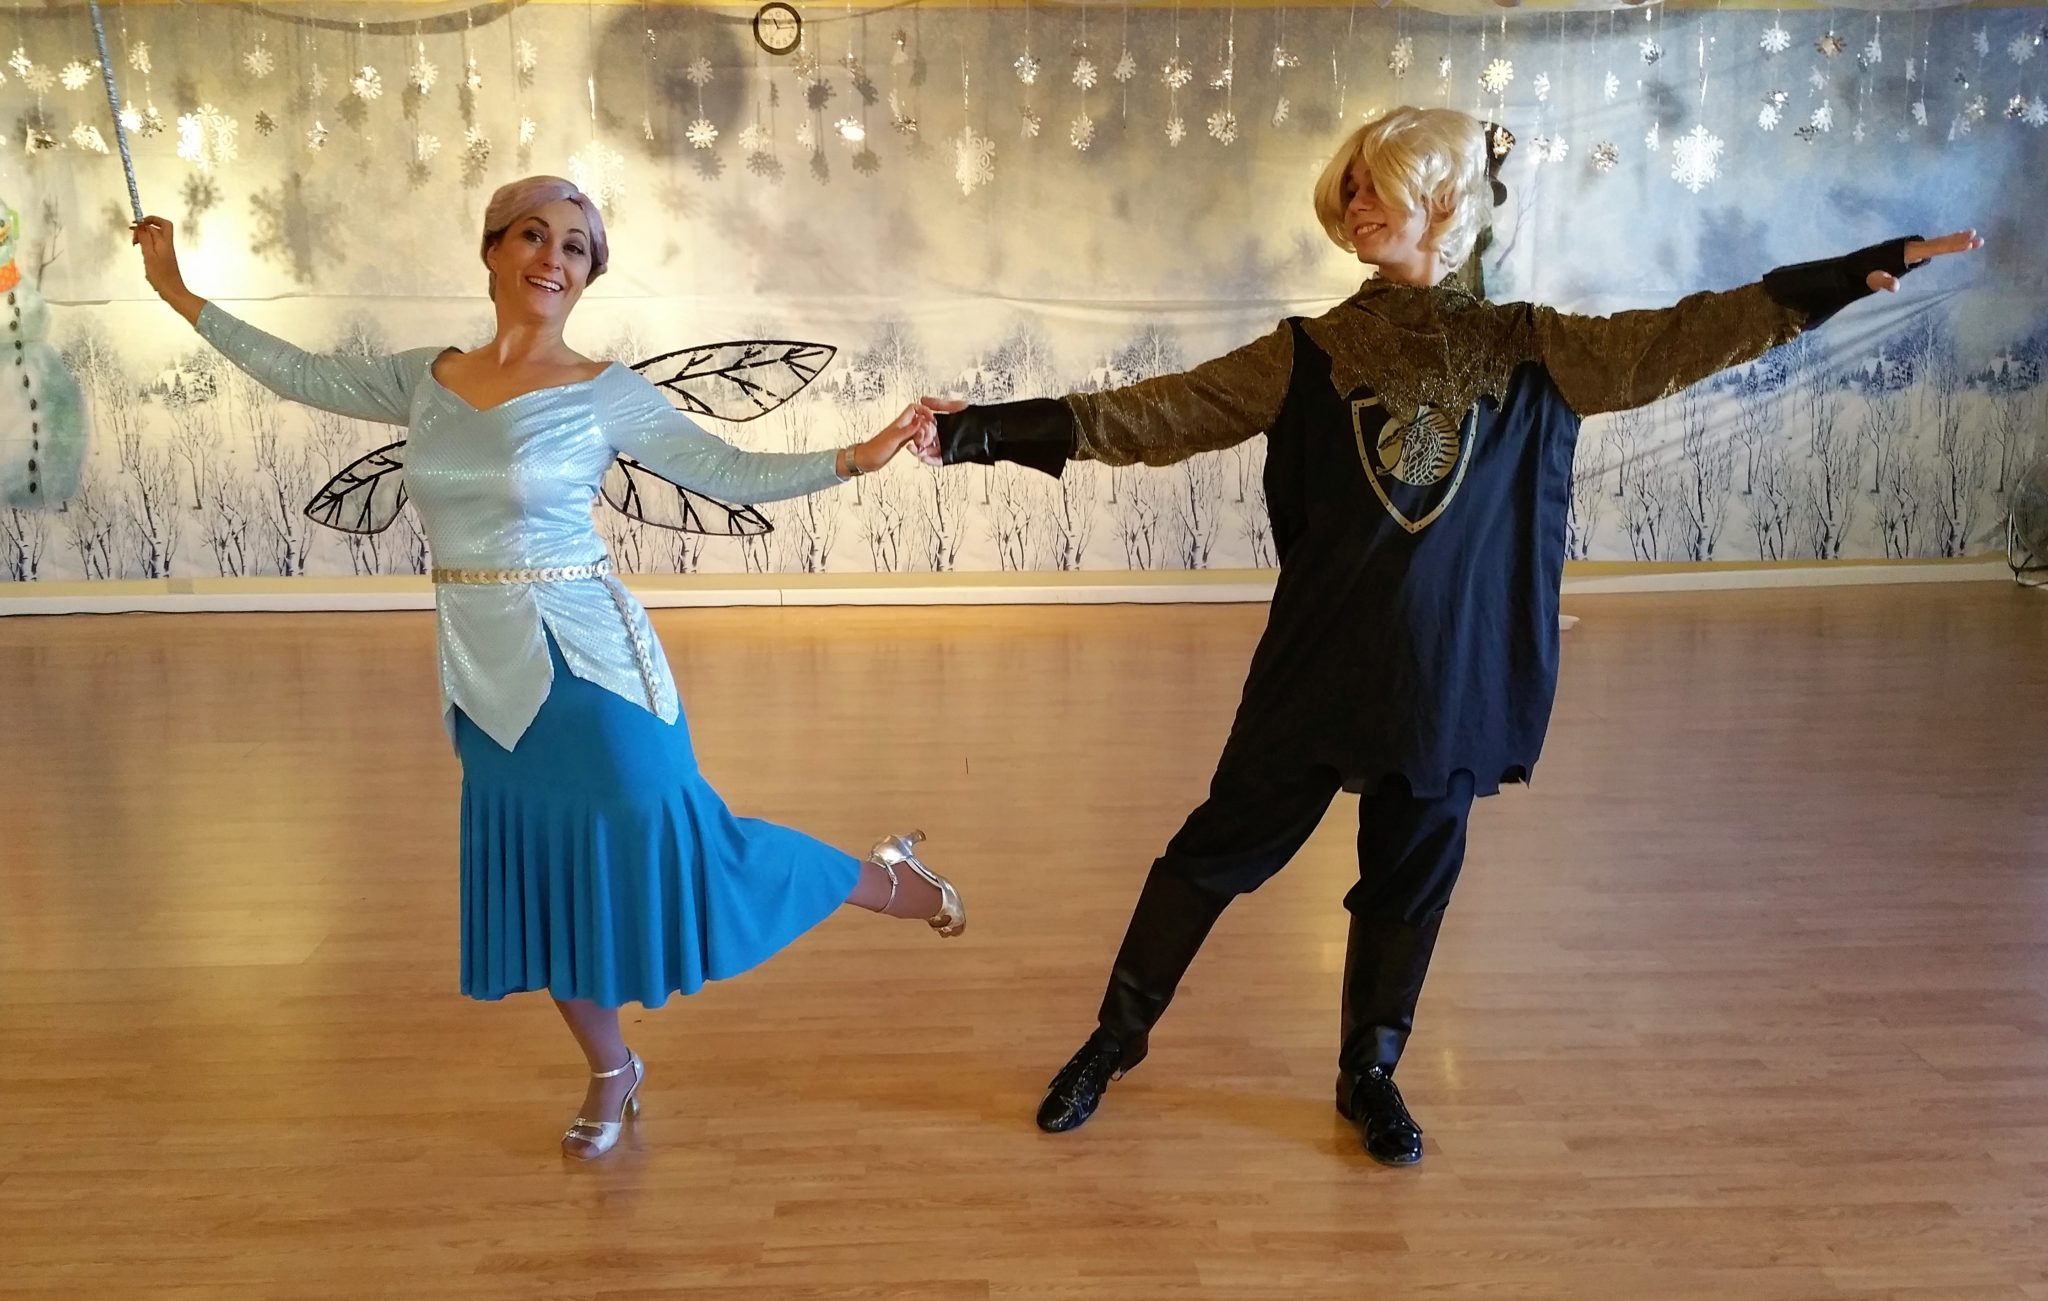 Godmothers 7 tips for mother son wedding dance adventures in dance godmothers 7 tips for mother son wedding dance junglespirit Choice Image